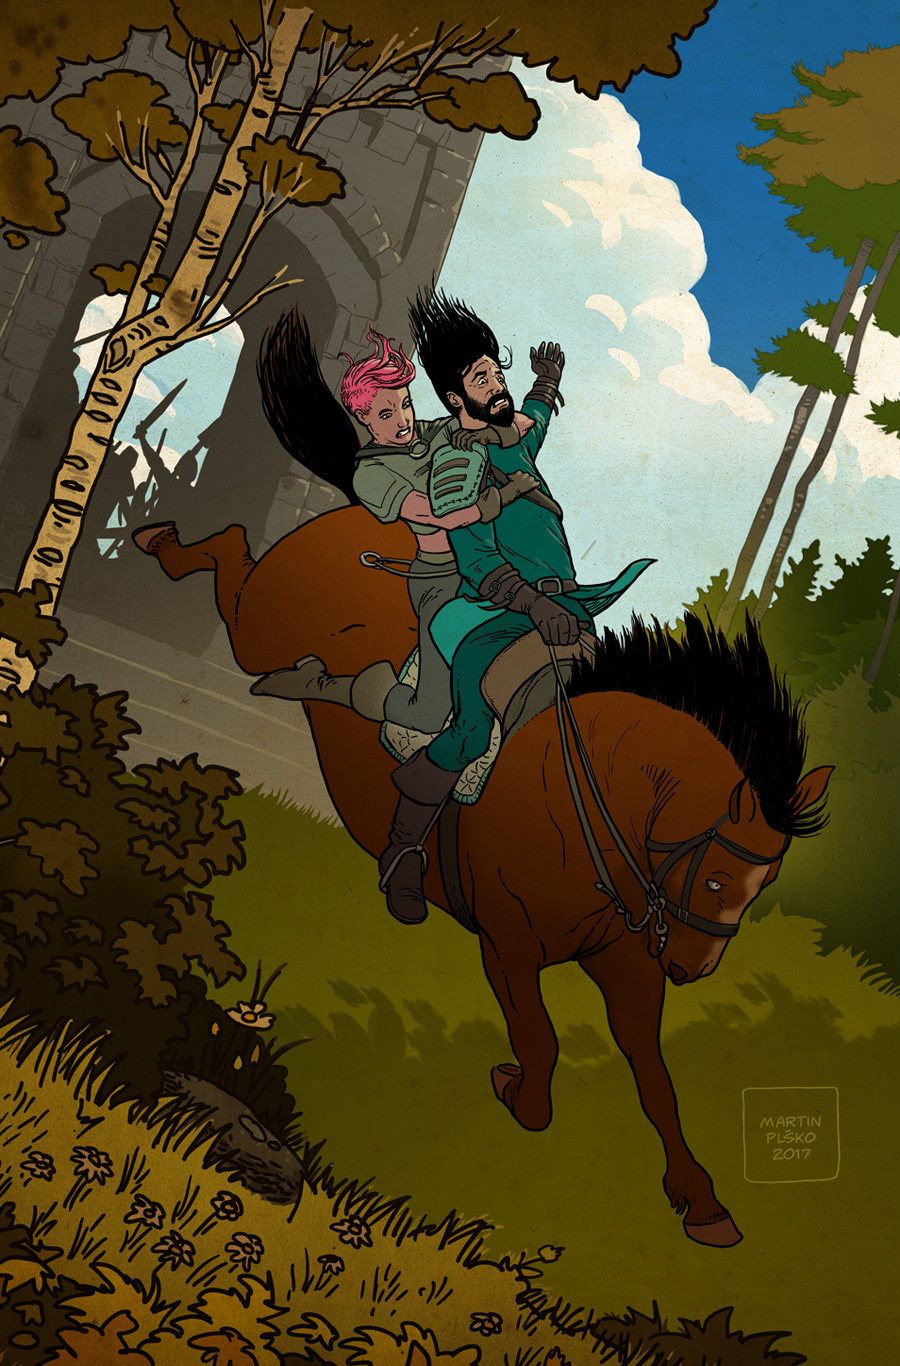 My pin-up for Ruin of Thieves: A Brigands story.